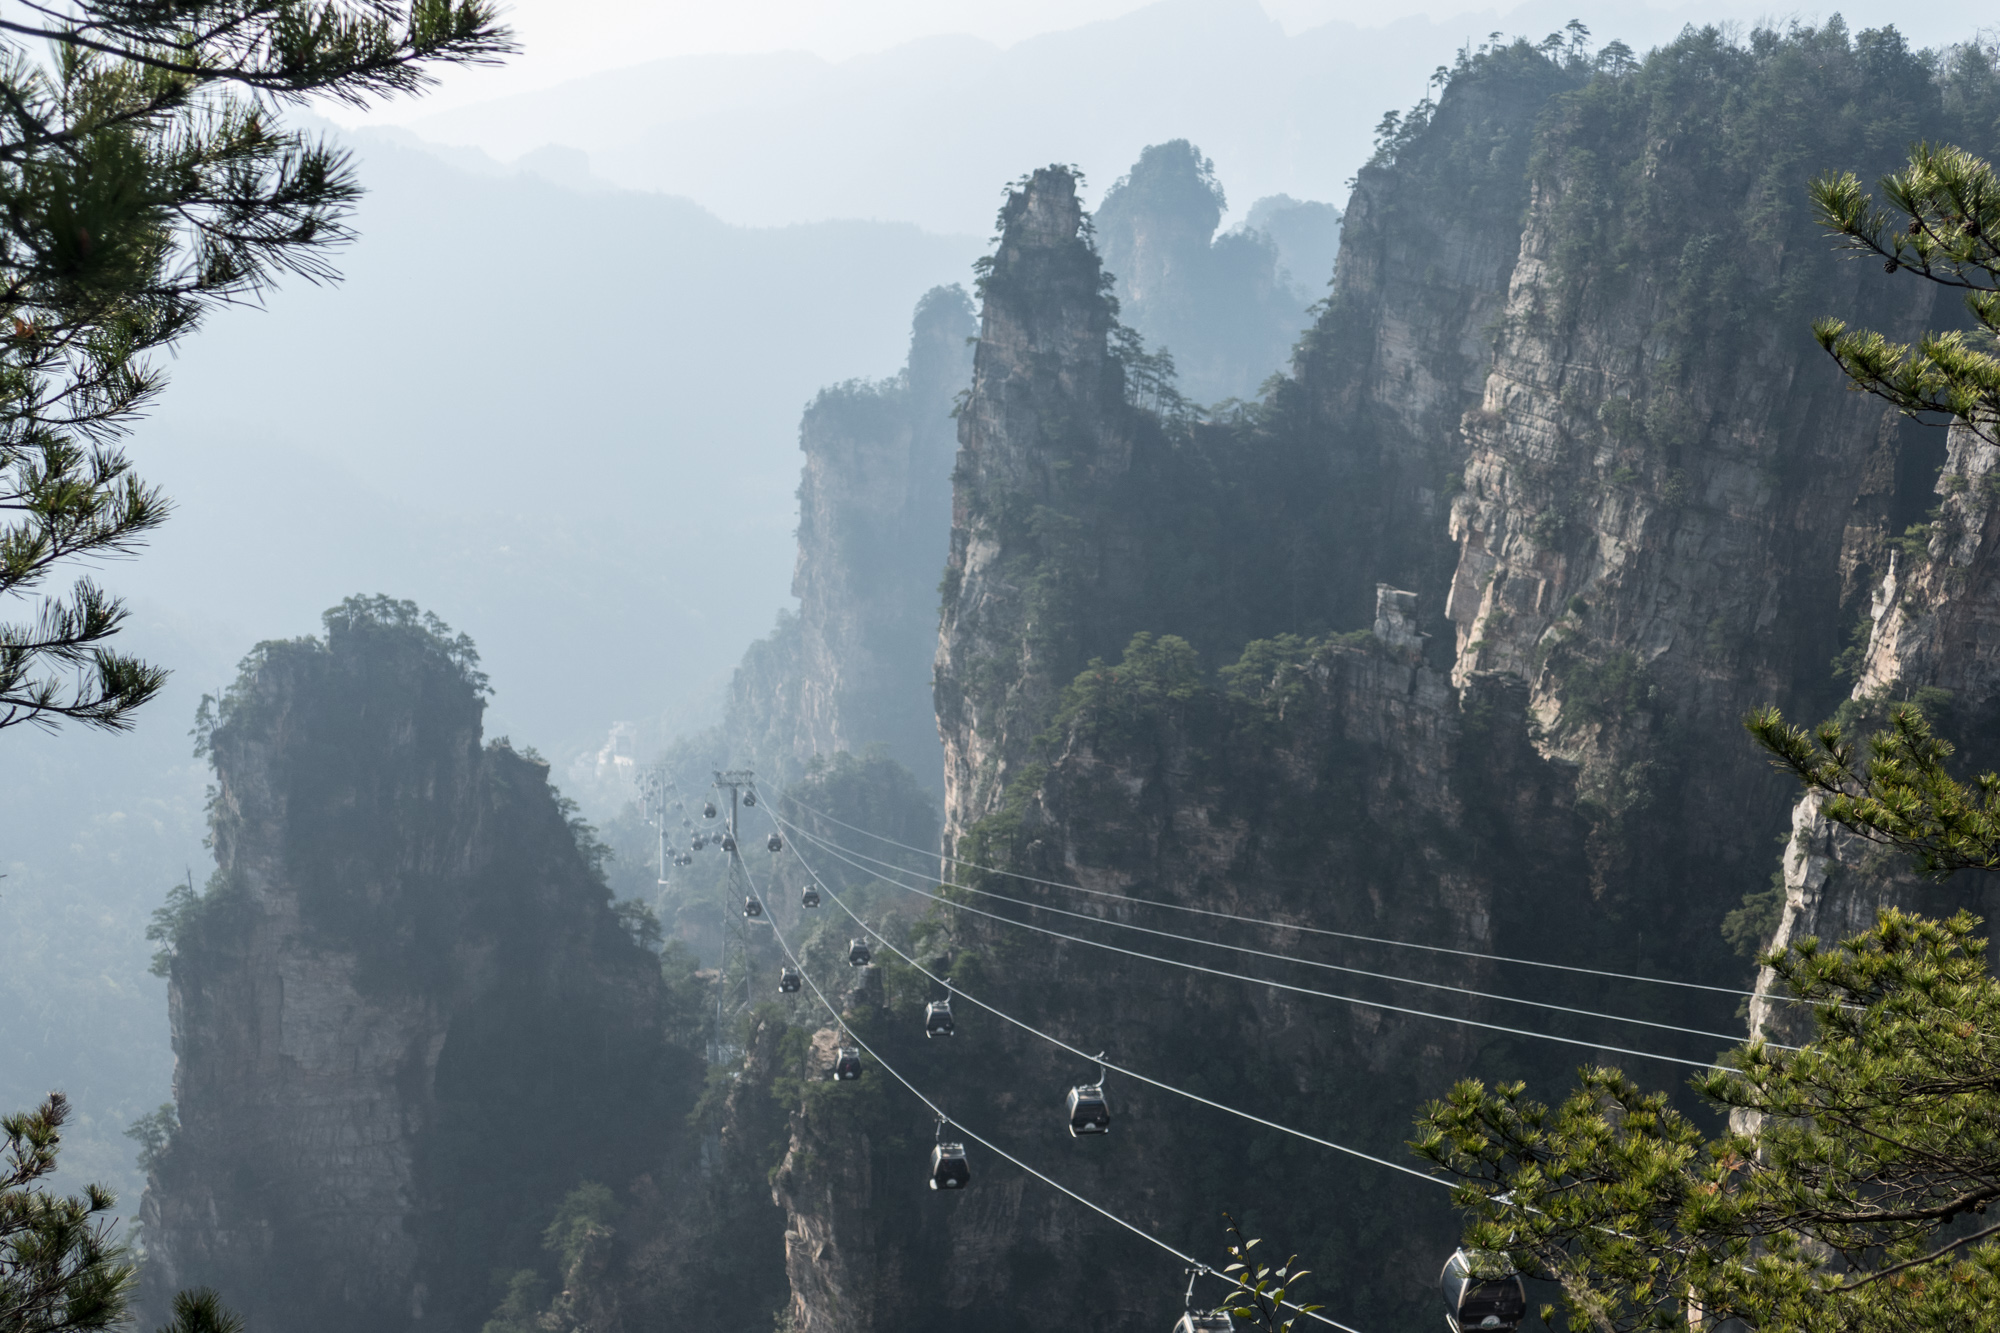 The easy way up the mountain on cable car